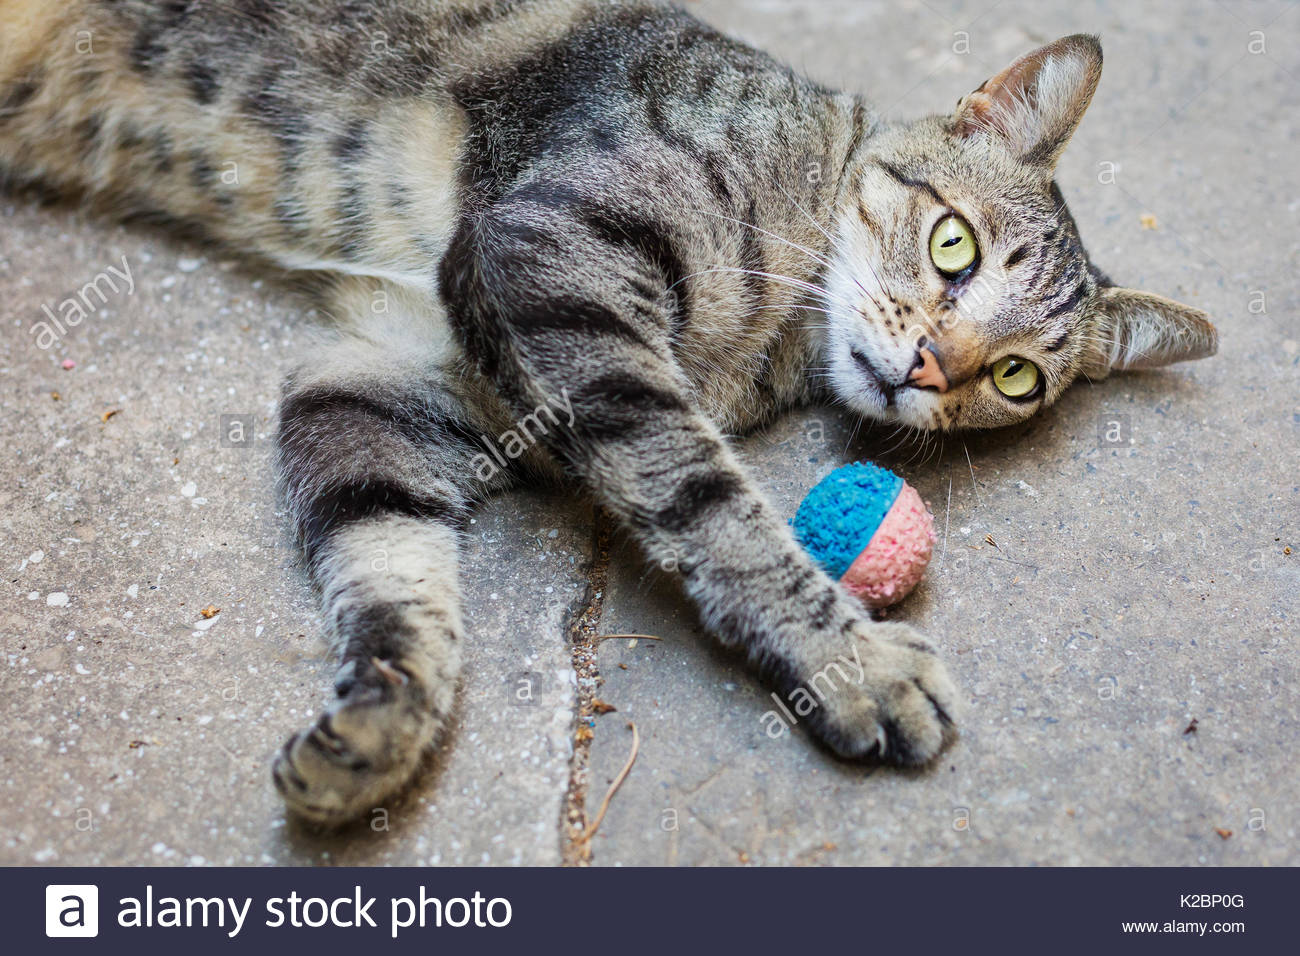 Cat plays with a ball - Stock Image